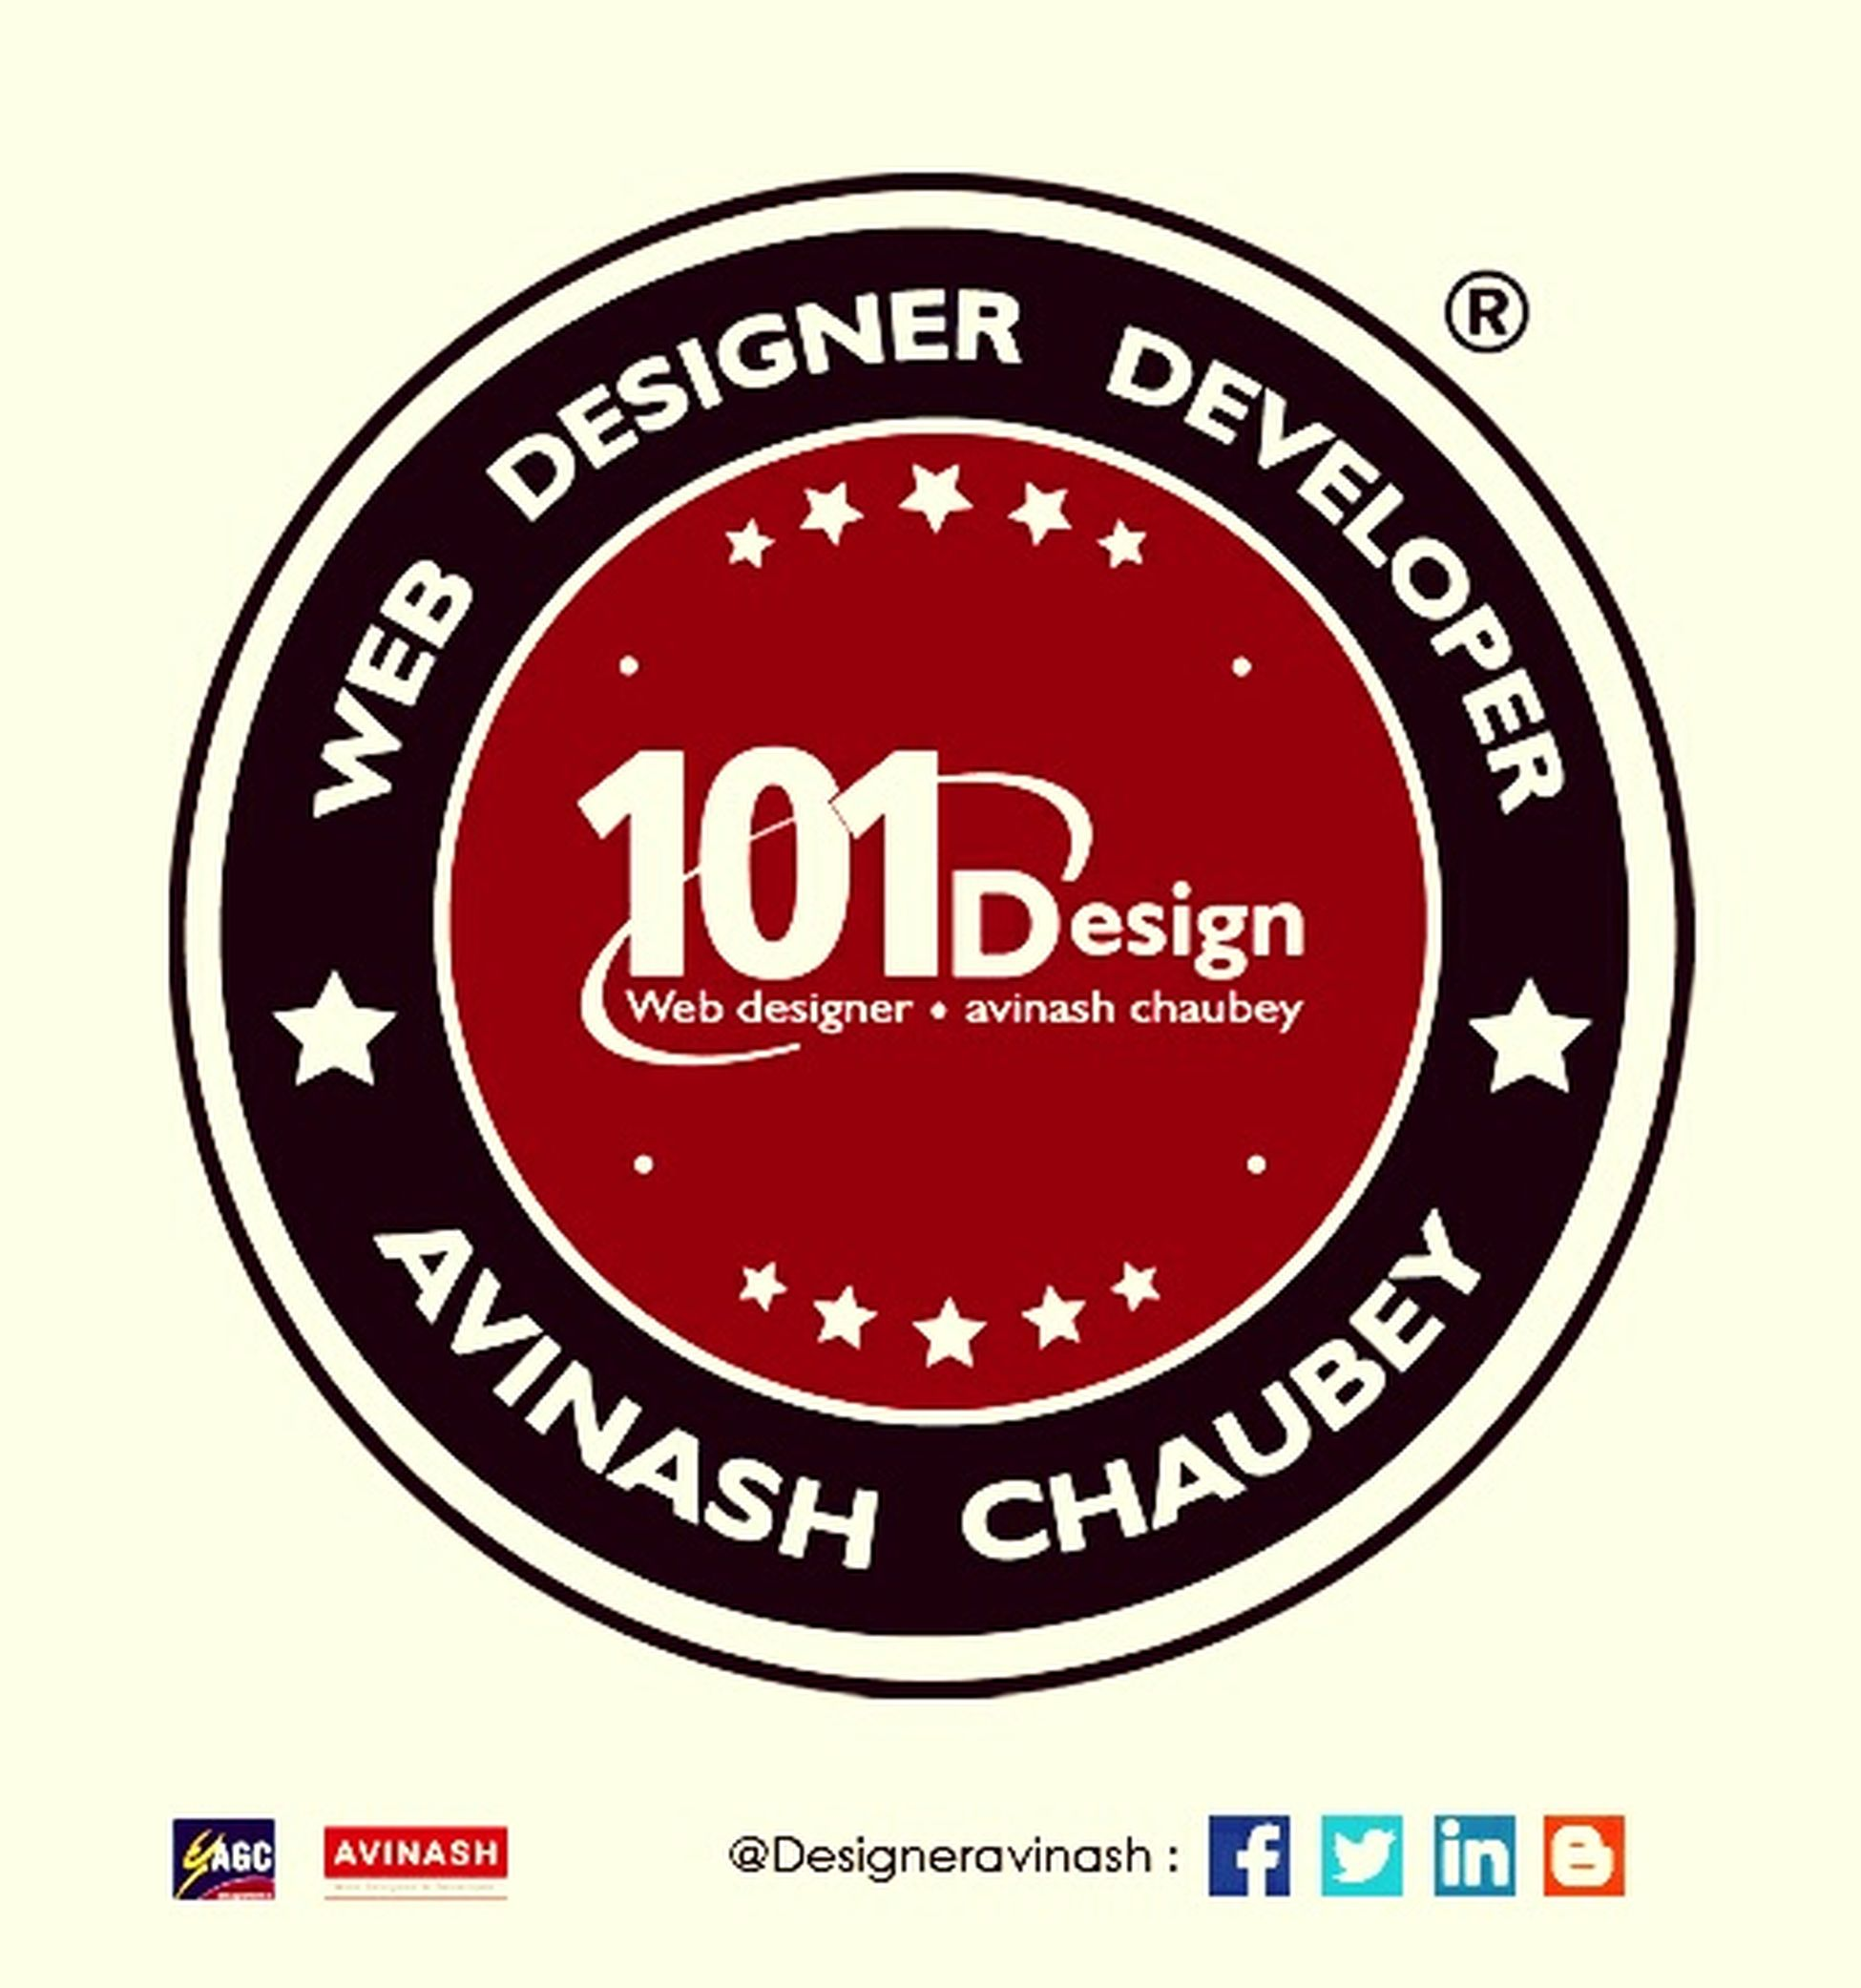 Logo : WeB Designer & Developer Name : Avinash Chaubey Purpose : 101 Design Completed Designeravinash Designer4life Check This Out